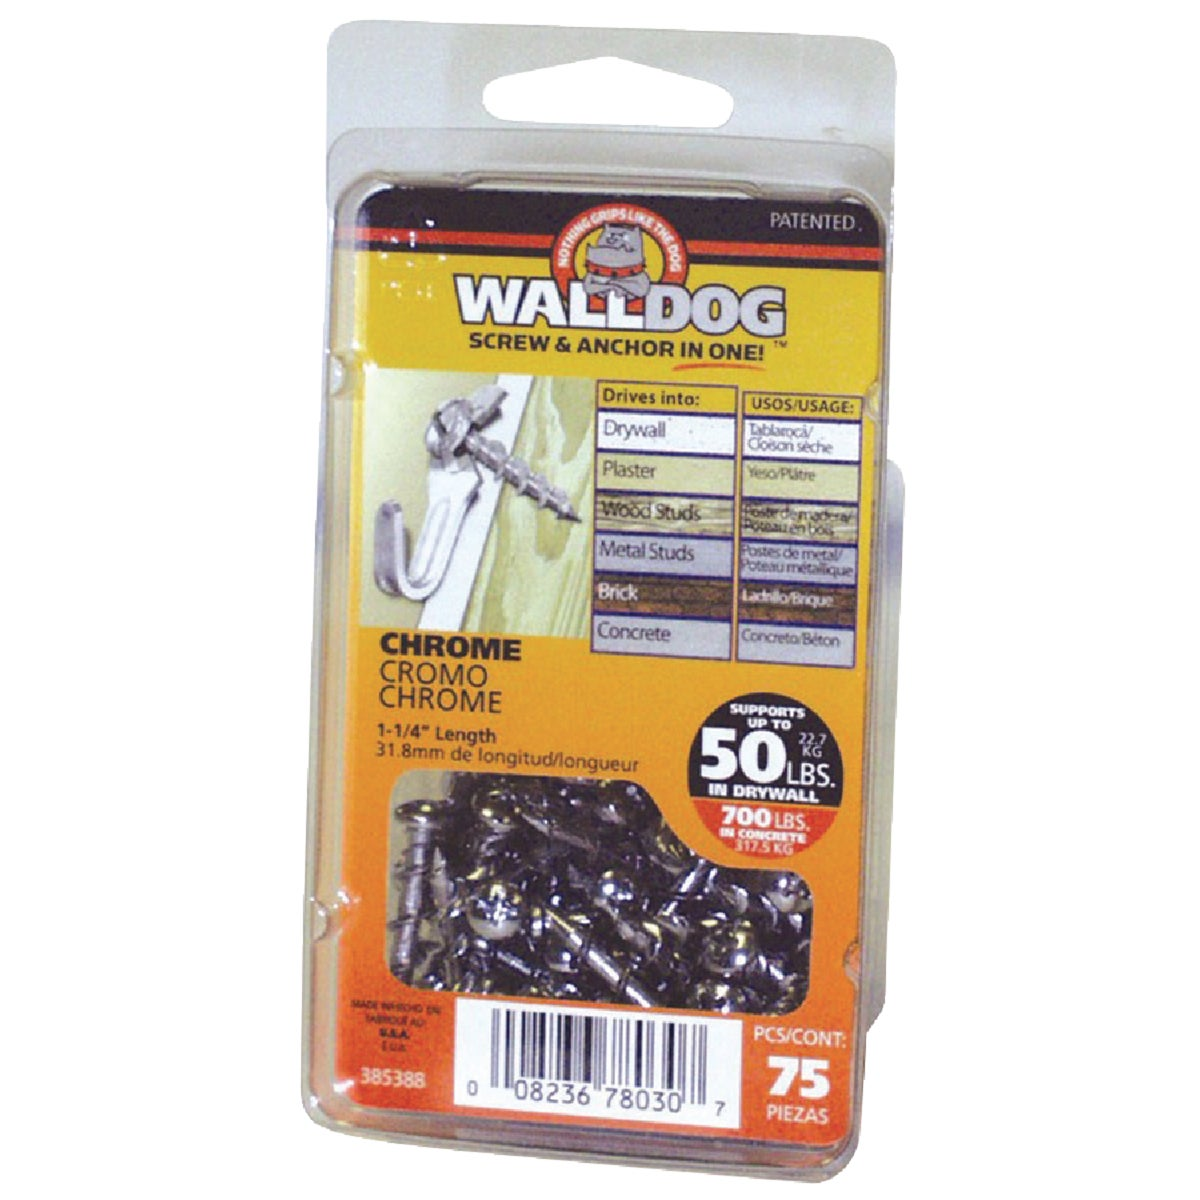 1-1/4 WHITE PHP WALLDOG - 385390 by Hillman Fastener